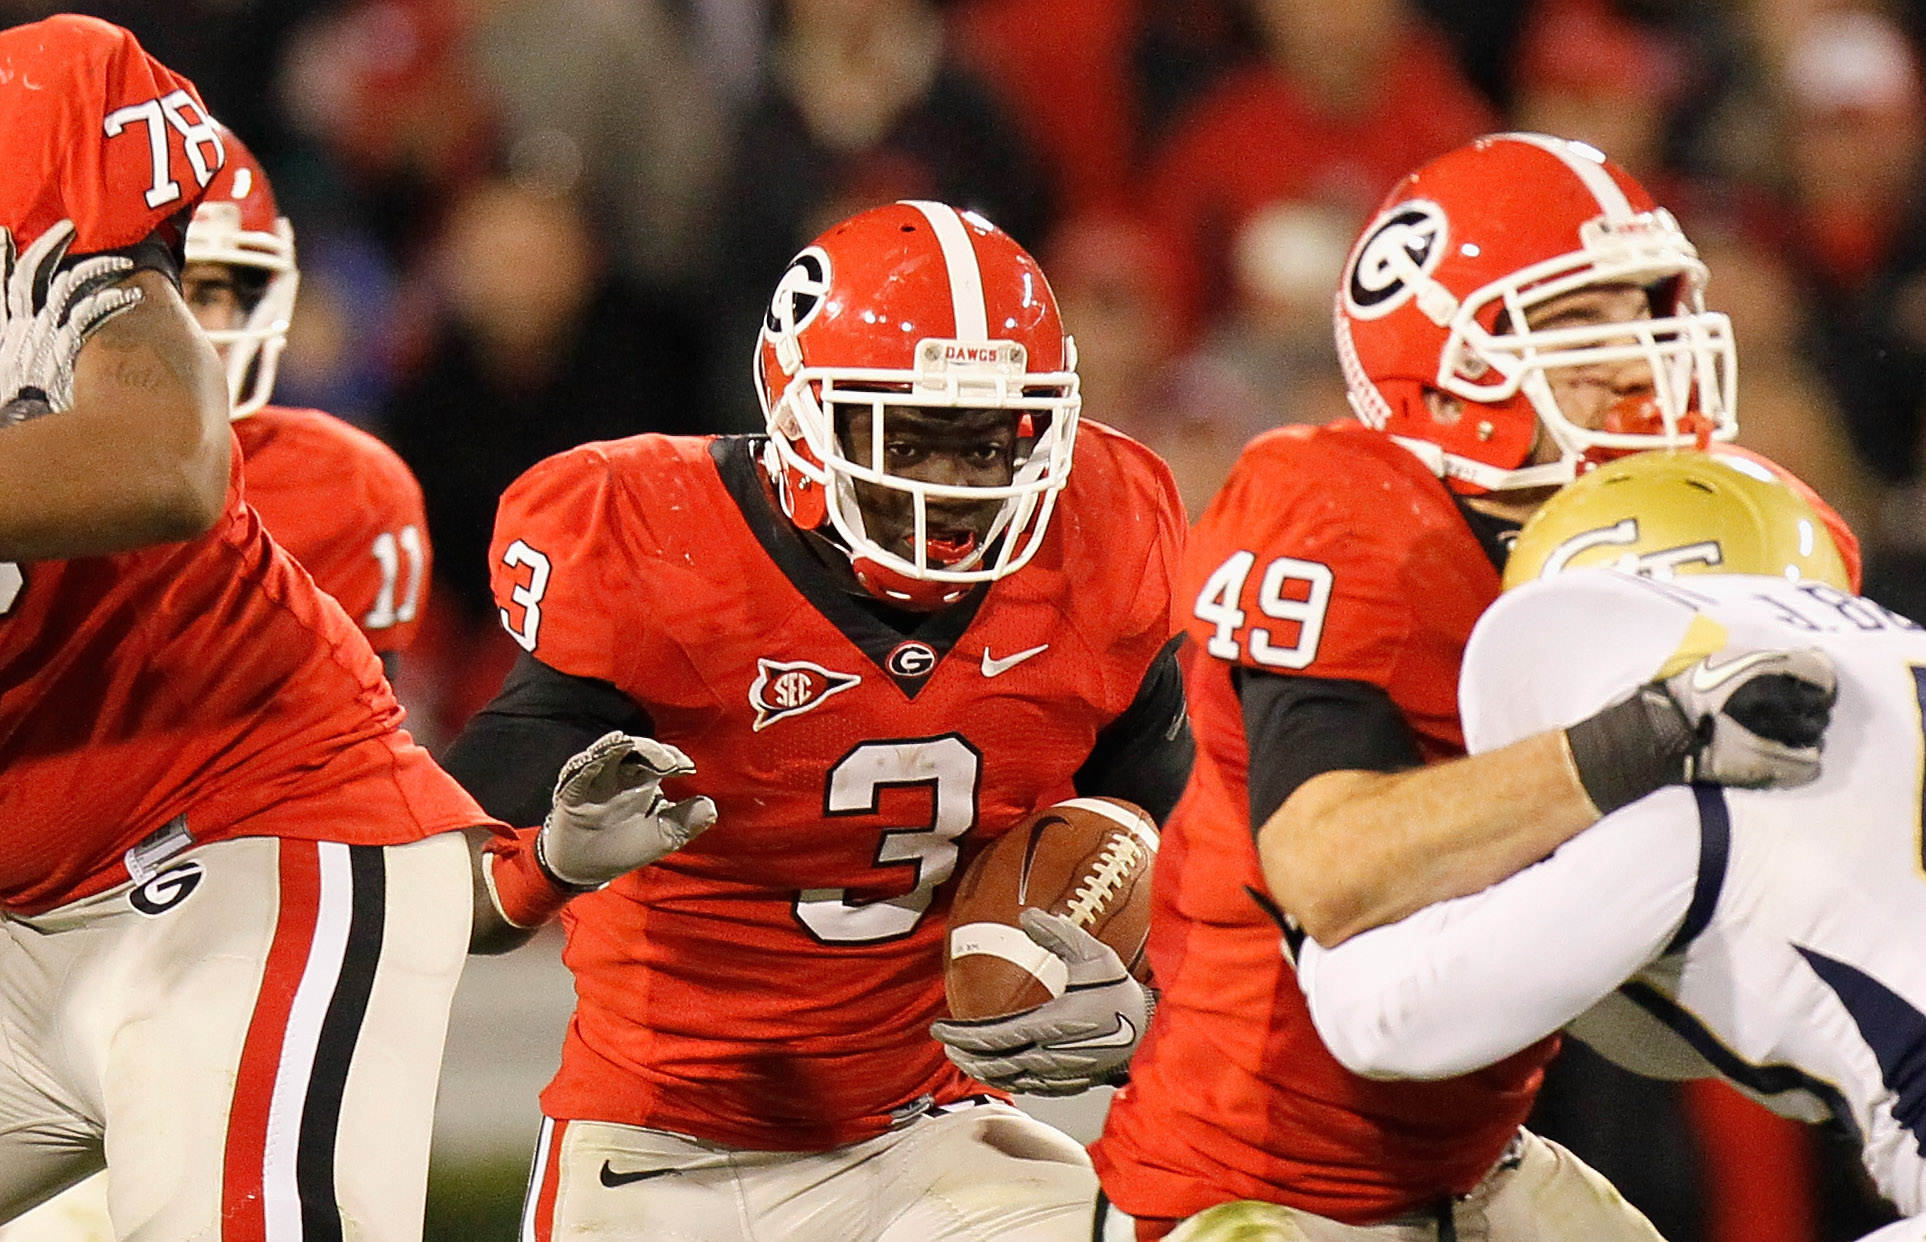 ATHENS, GA - NOVEMBER 27:  Washaun Ealey #3 of the Georgia Bulldogs follows his blockers against the Georgia Tech Yellow Jackets at Sanford Stadium on November 27, 2010 in Athens, Georgia.  (Photo by Kevin C. Cox/Getty Images)